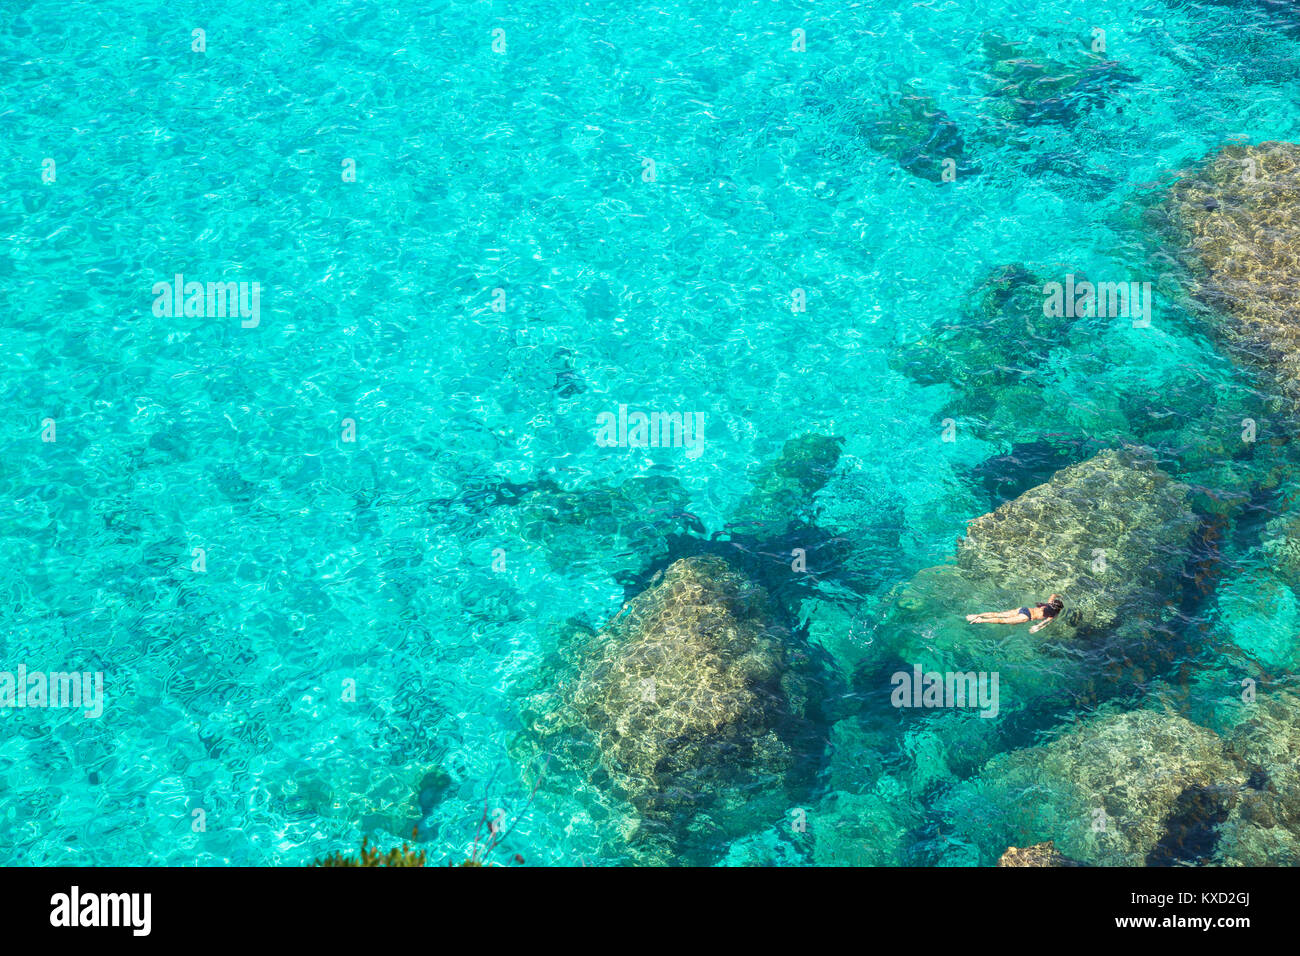 Person swimming in the emerald waters of Cala Mitjana, Menorca, Balearic Islands,  Spain, Europe Stock Photo